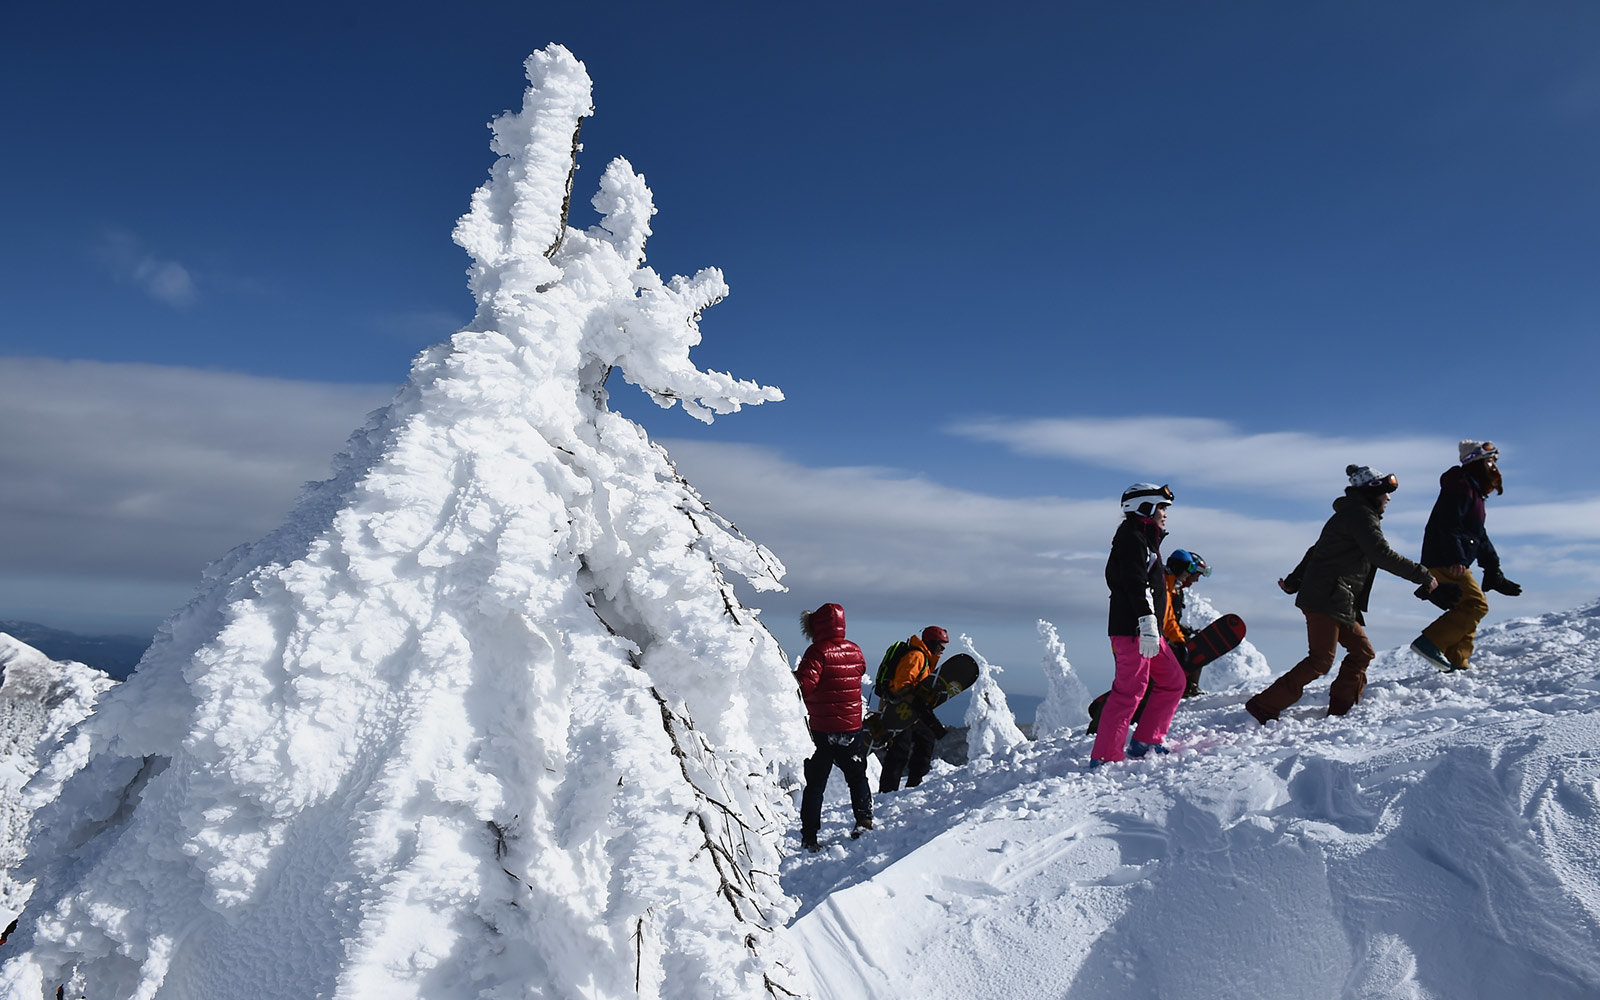 Snow monsters come to life every winter in Japan to keep skiers company on the slopes